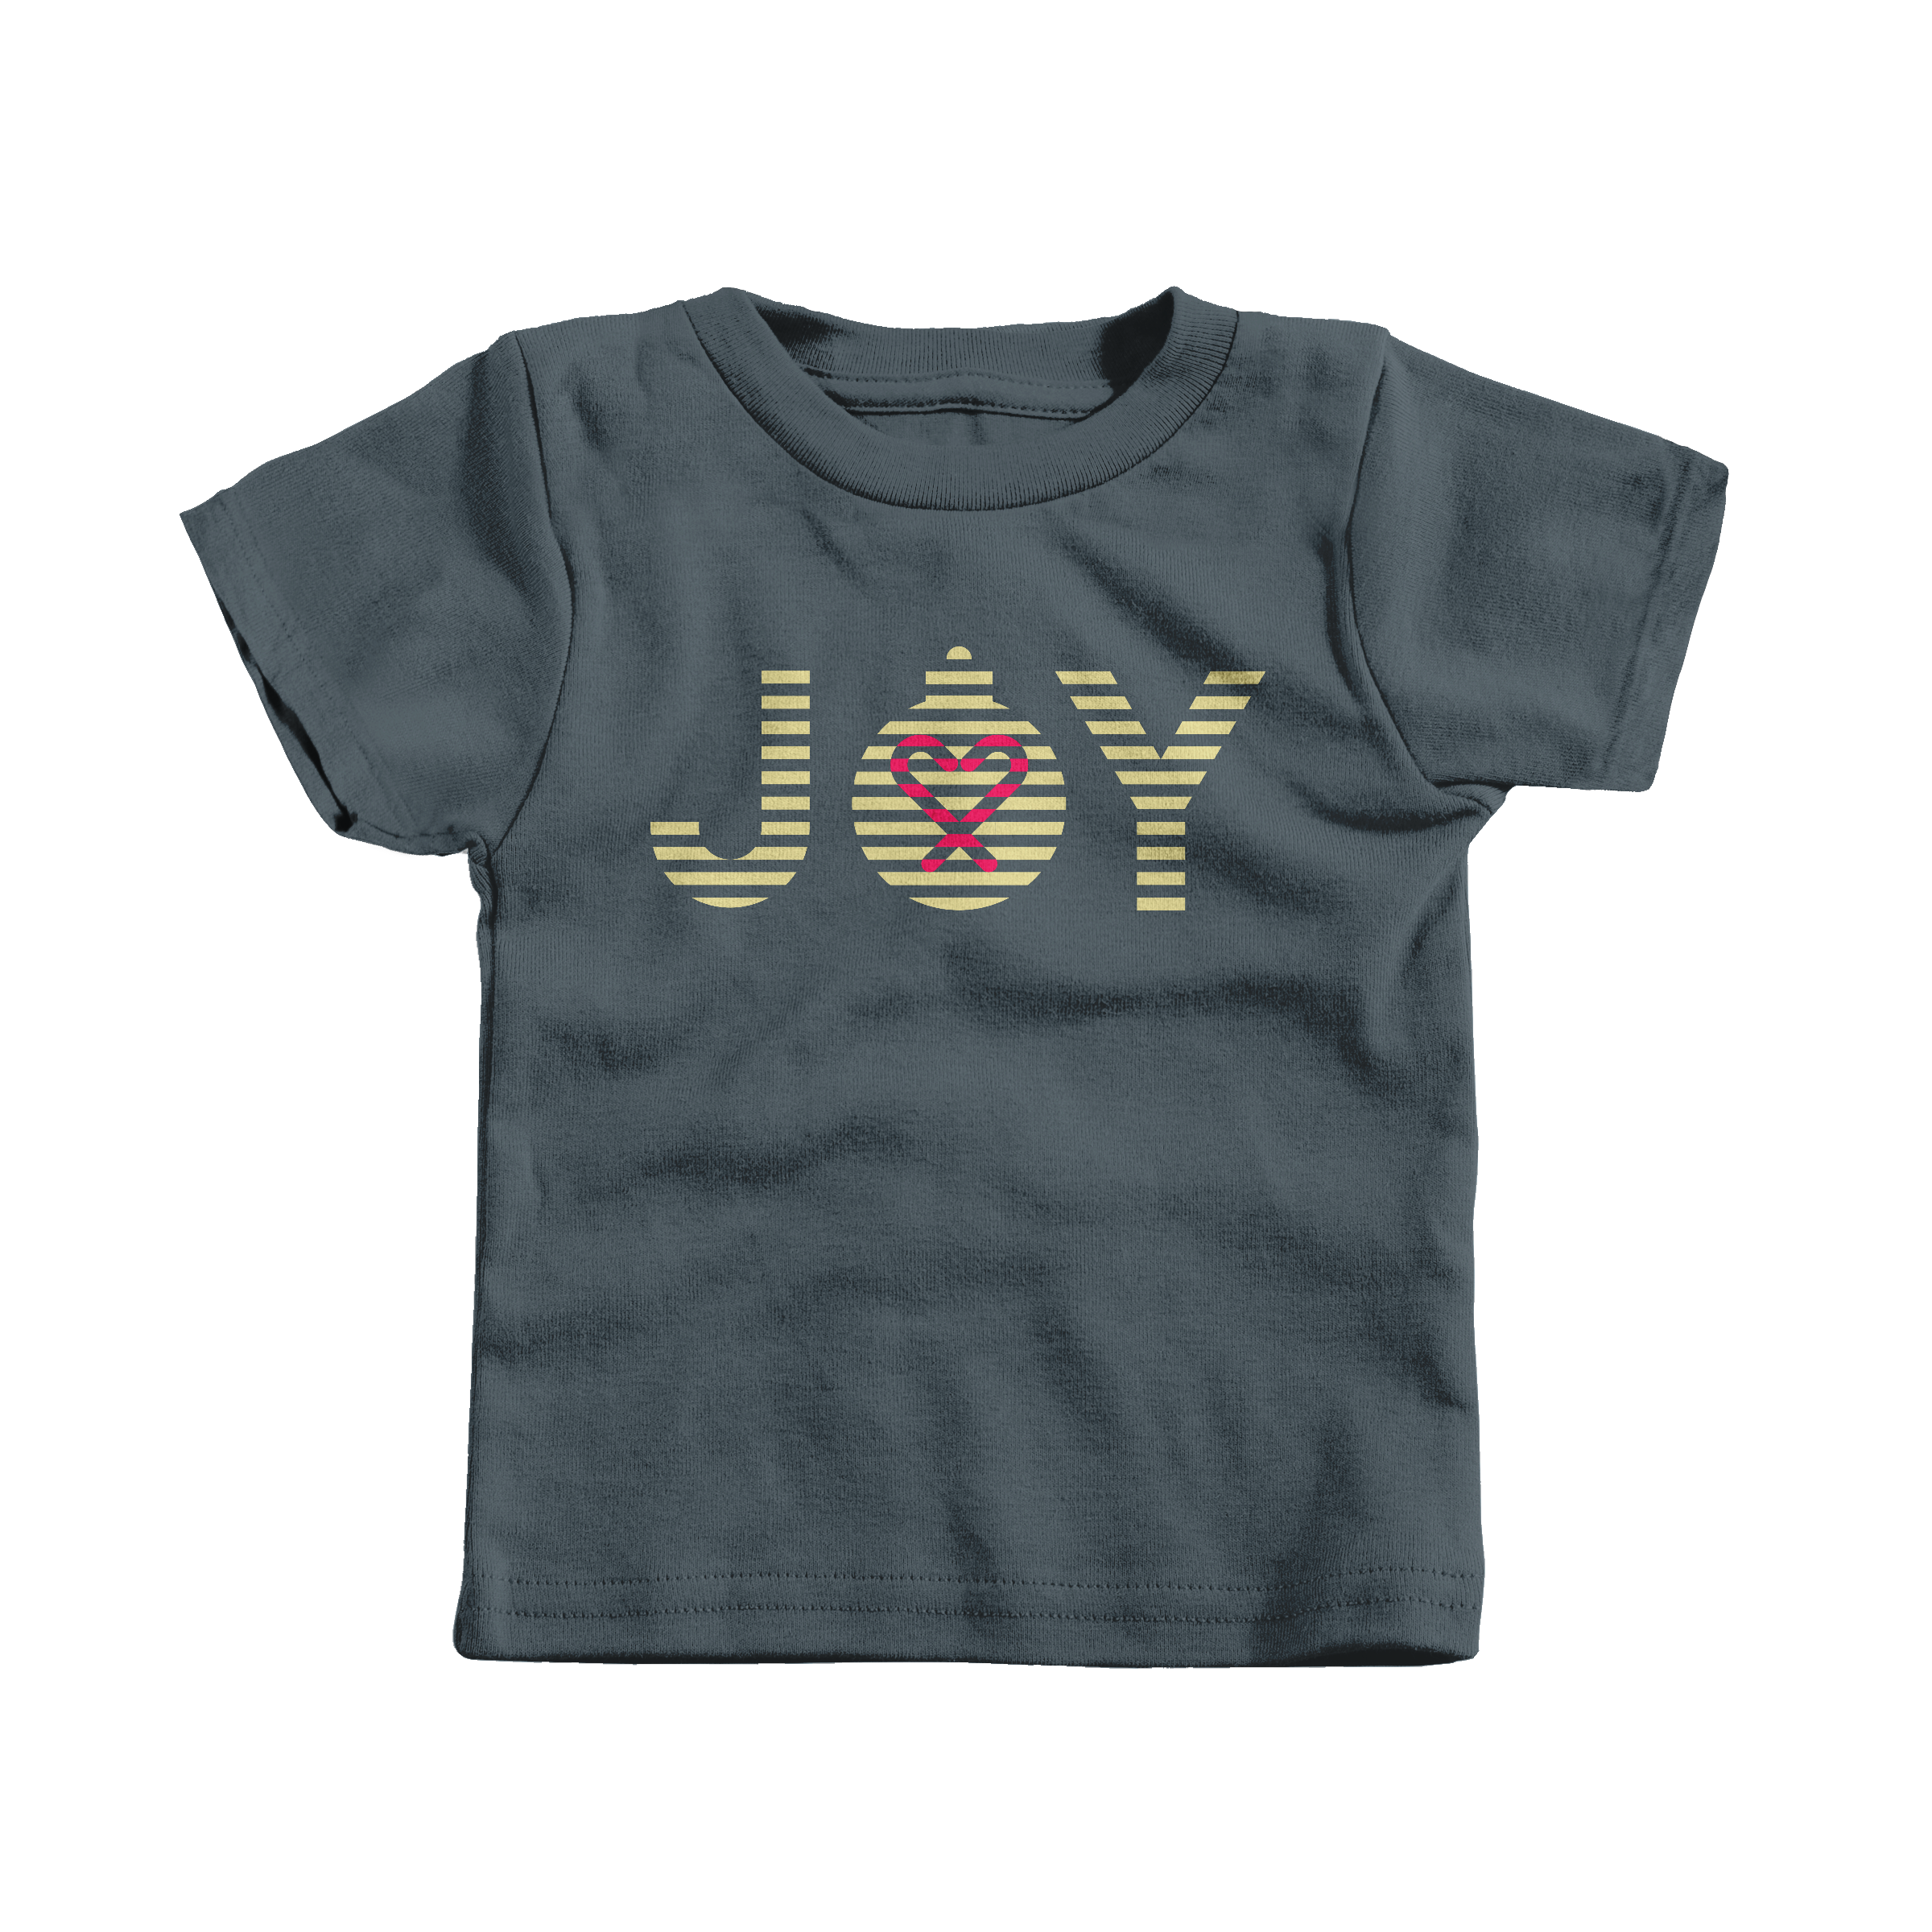 Spread Joy Charcoal (T-Shirt)